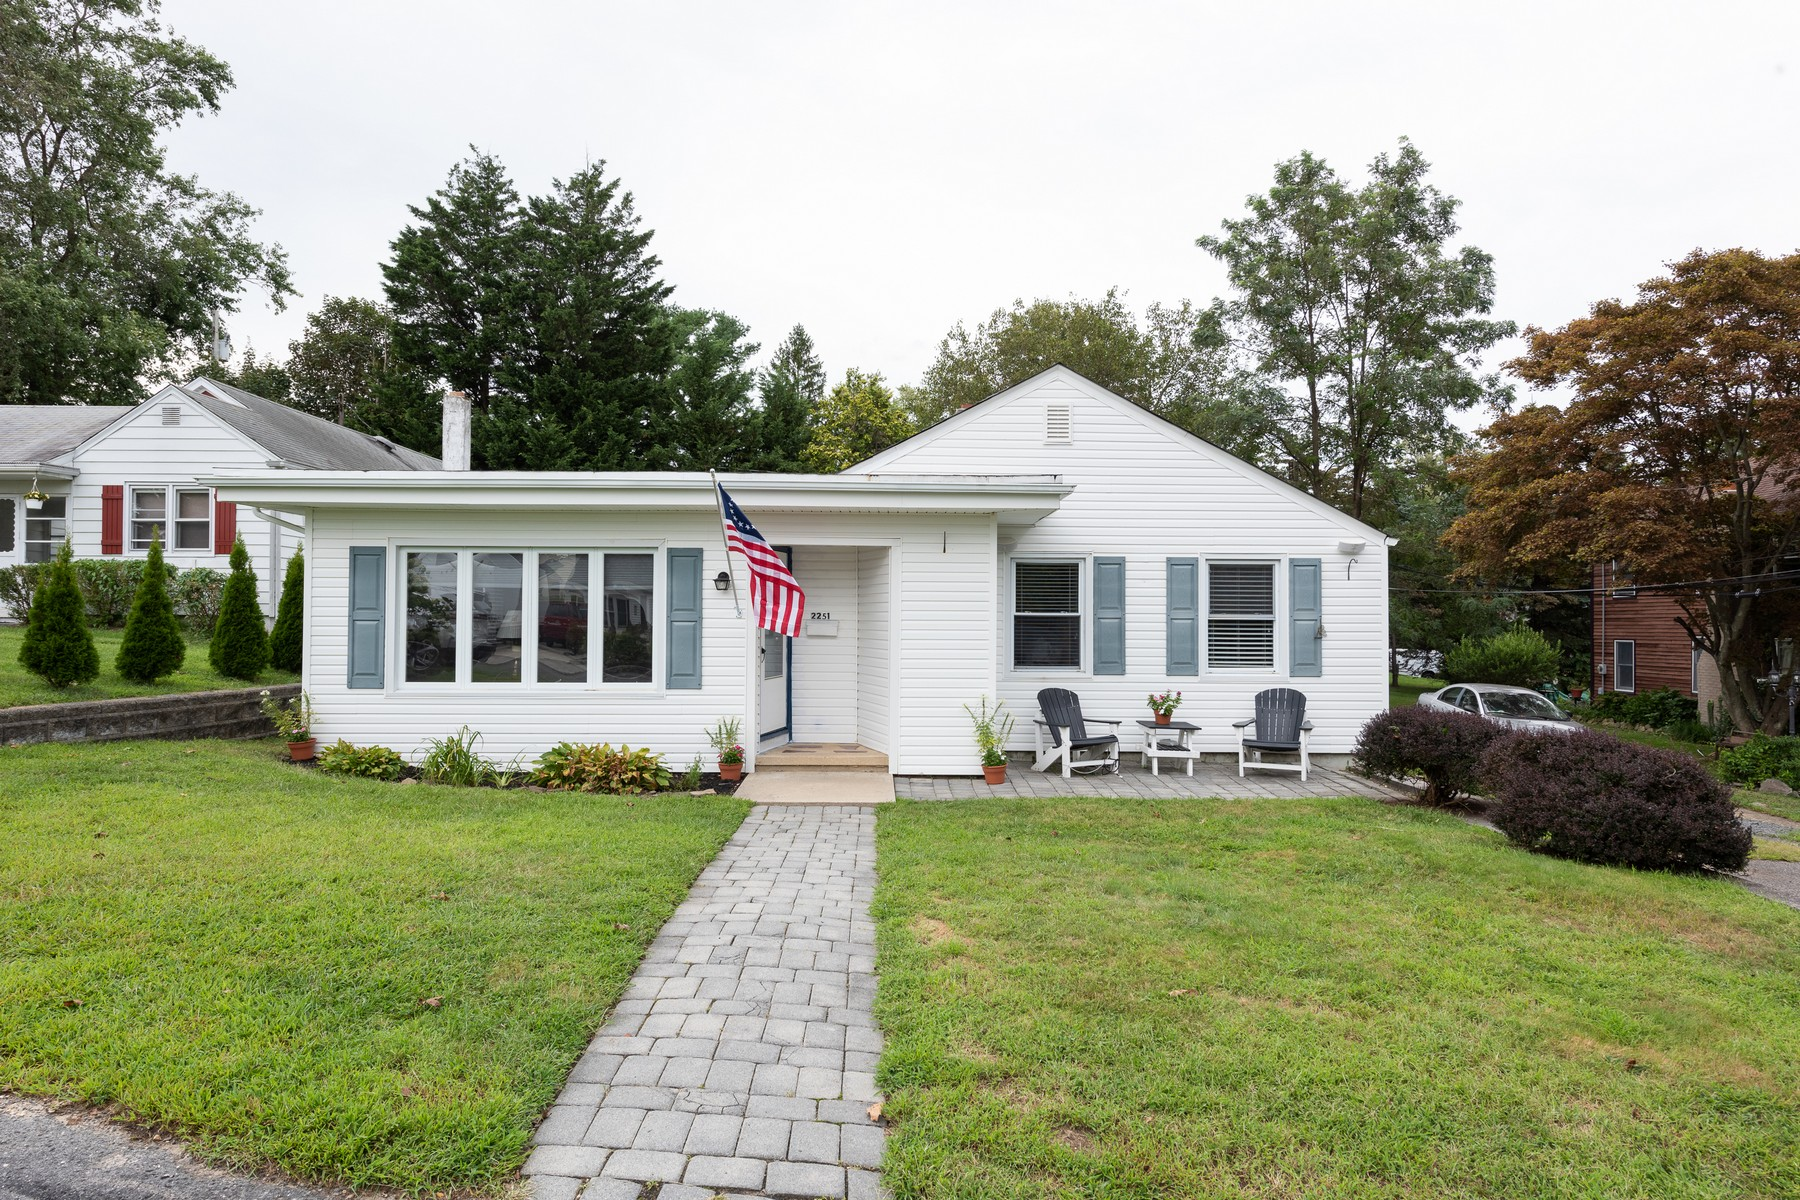 Single Family Homes for Sale at Charming Ranch 2251 Wagner Lane, Manasquan, New Jersey 08736 United States